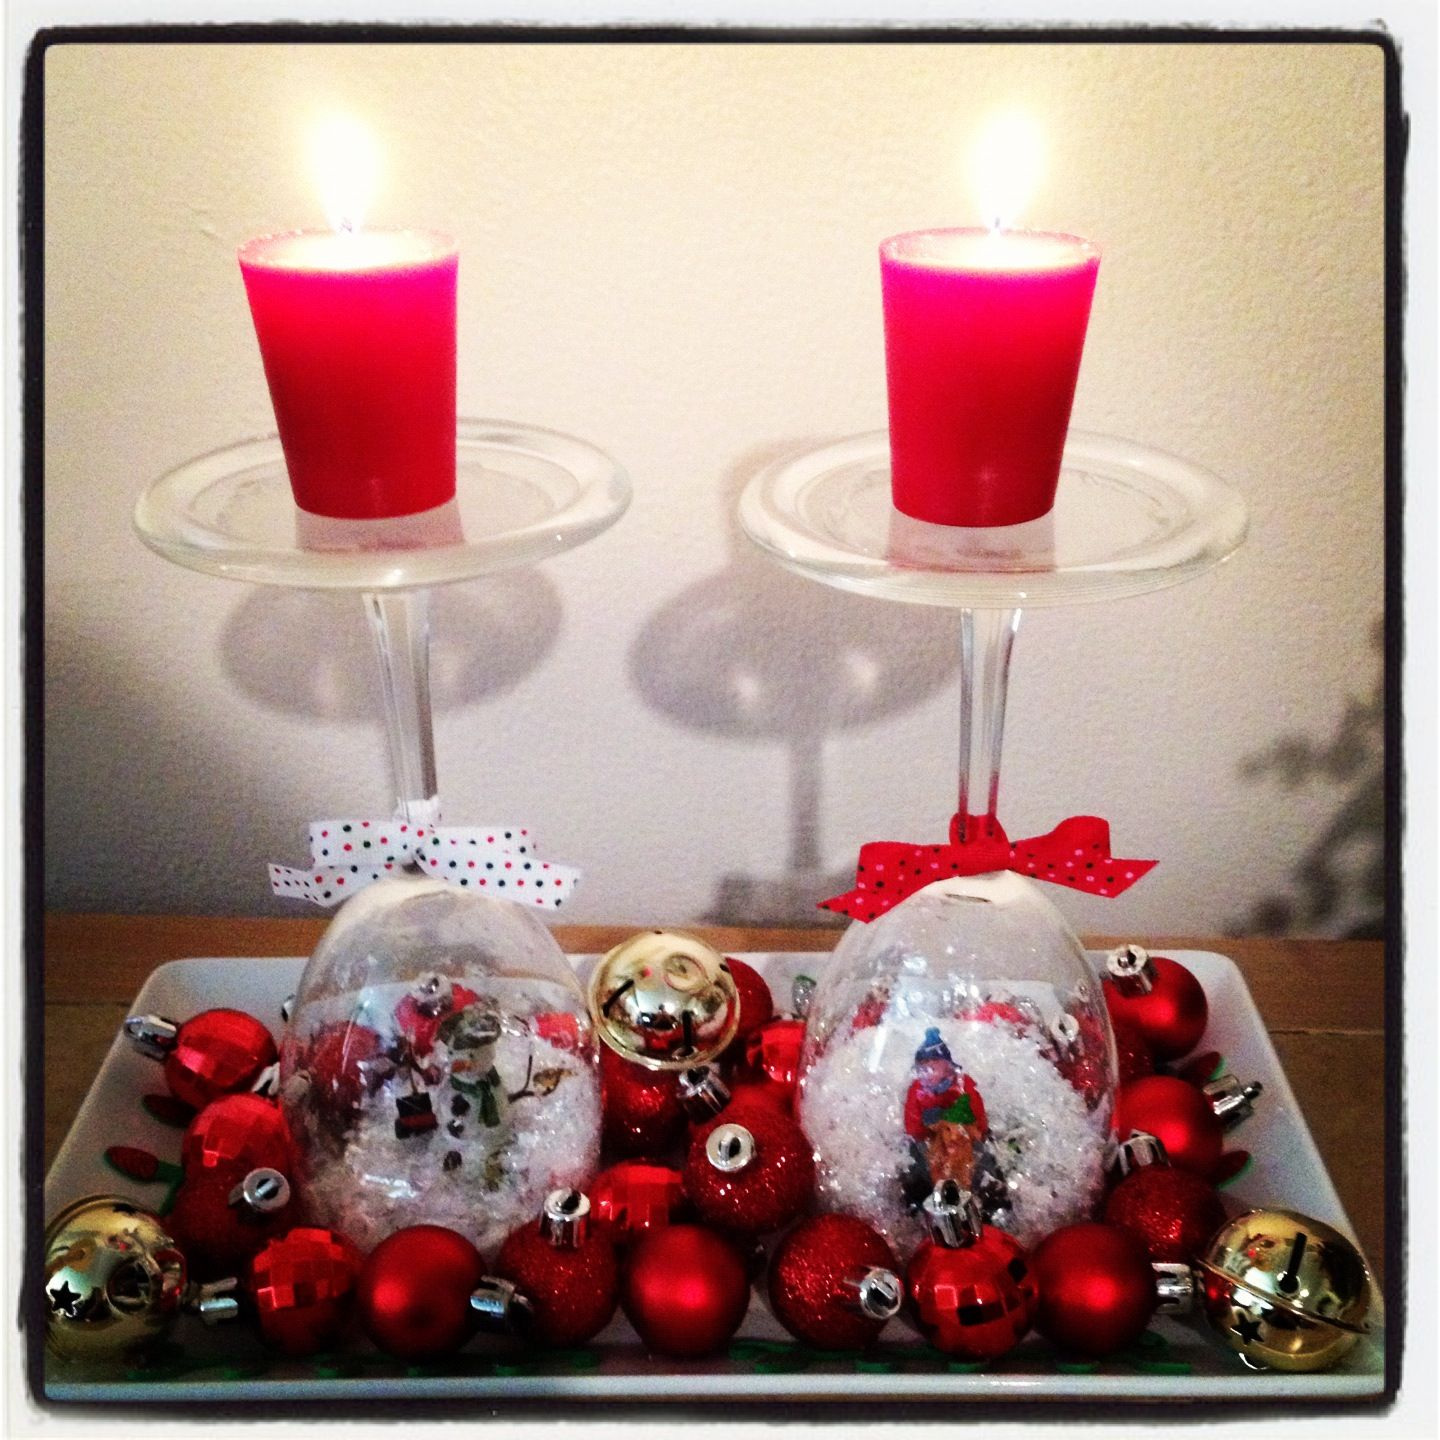 Snow globe wine glasses with candles and mini ornaments. Makes a great centerpiece for a small table during the holidays. :)